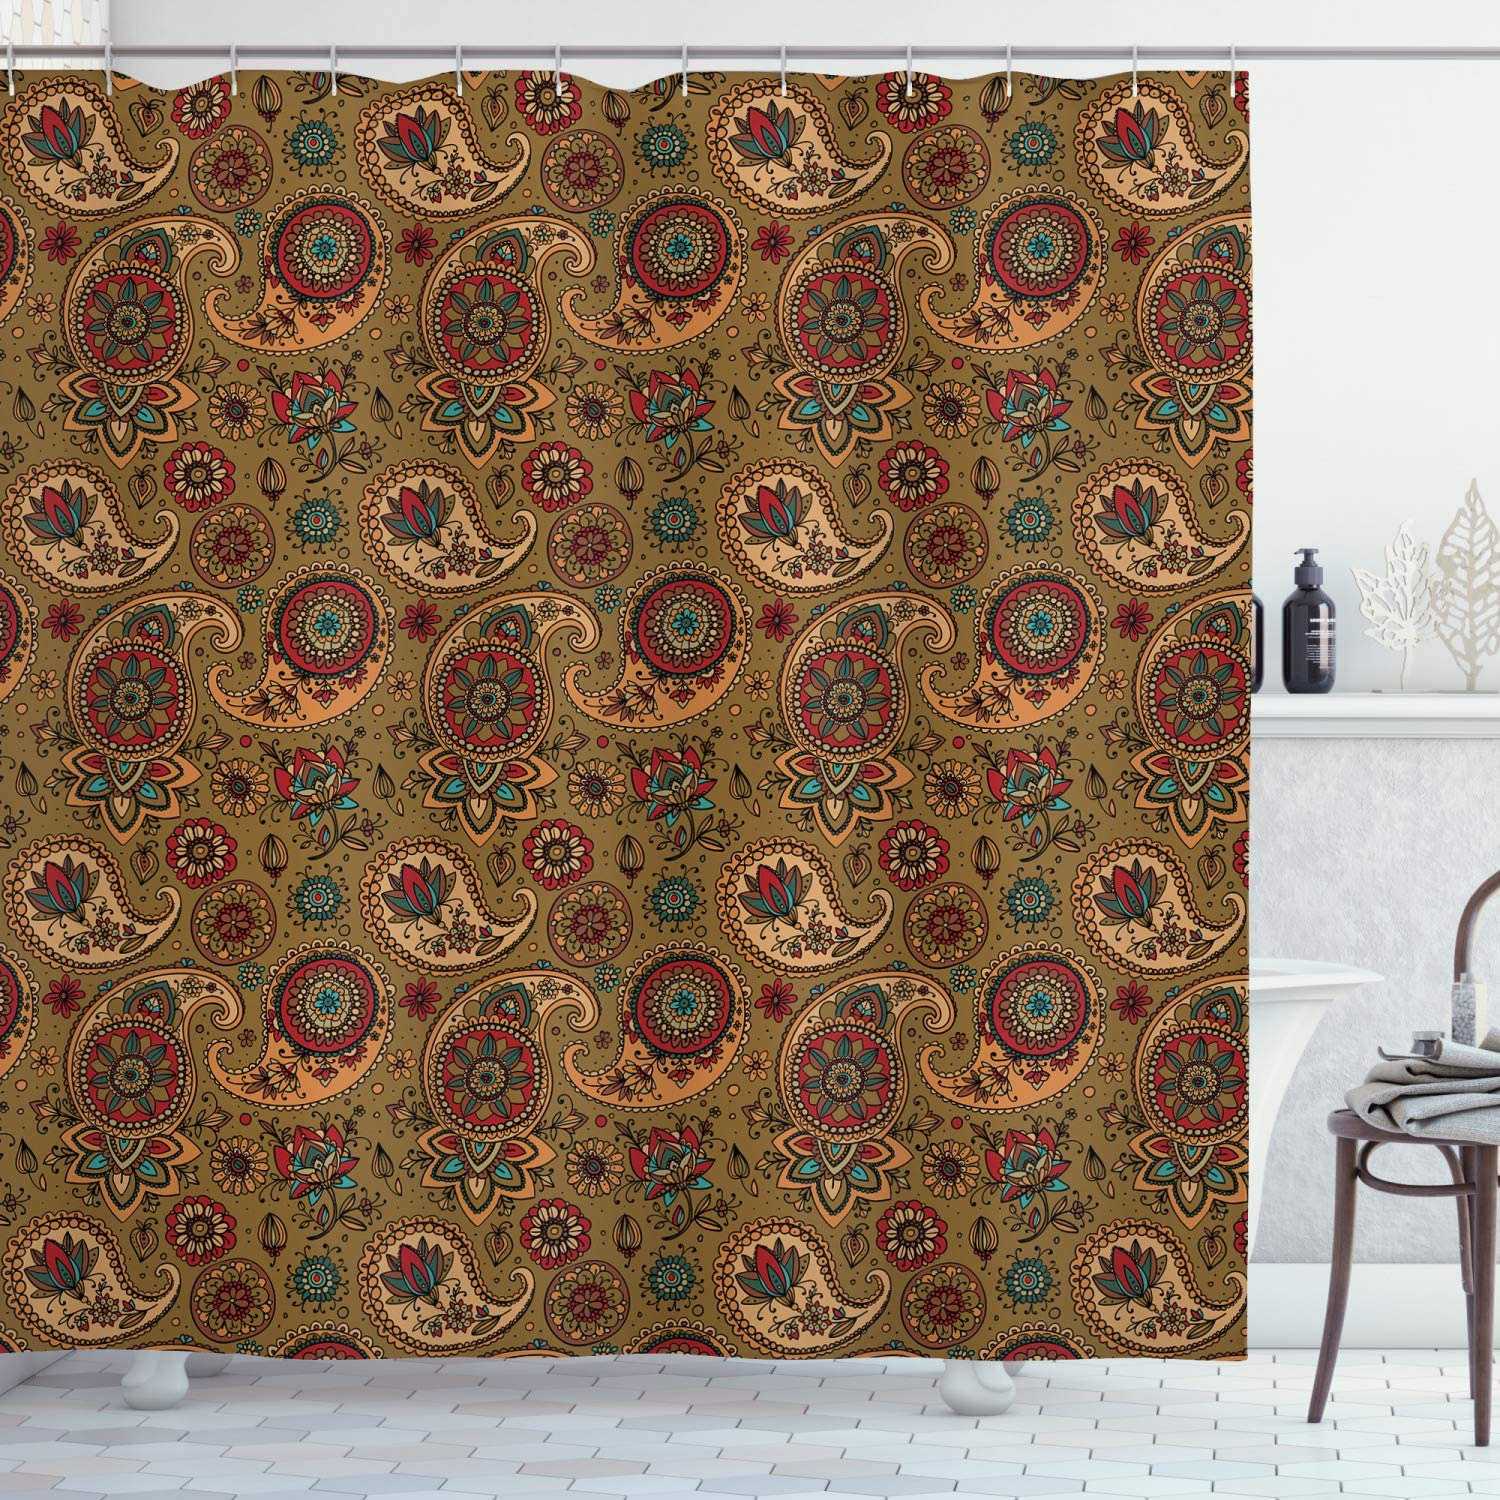 Ambesonne Paisley Shower Curtain, Vintage Inspired Multicolored Leaf Flower Motif in Earth Tones Print, Cloth Fabric Bathroom Decor Set with Hooks, 75